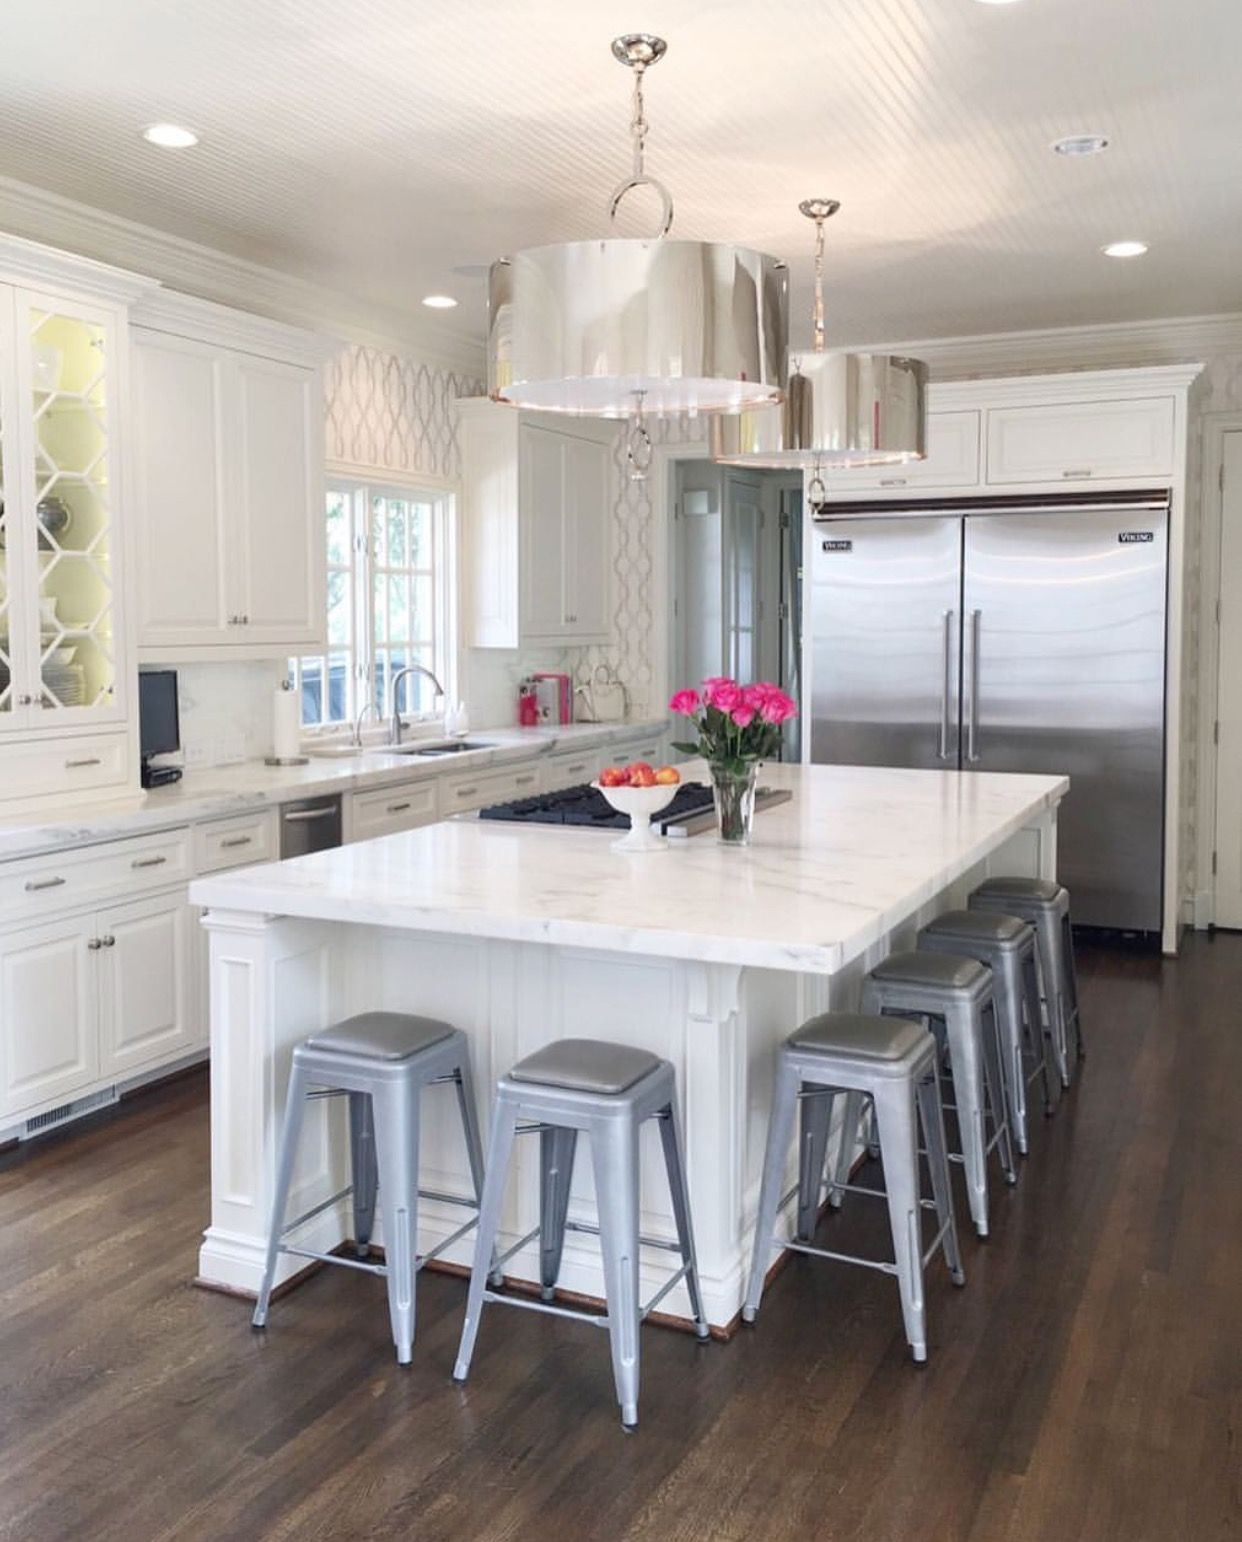 Island seating on corner, no support | Kitchen island with ...